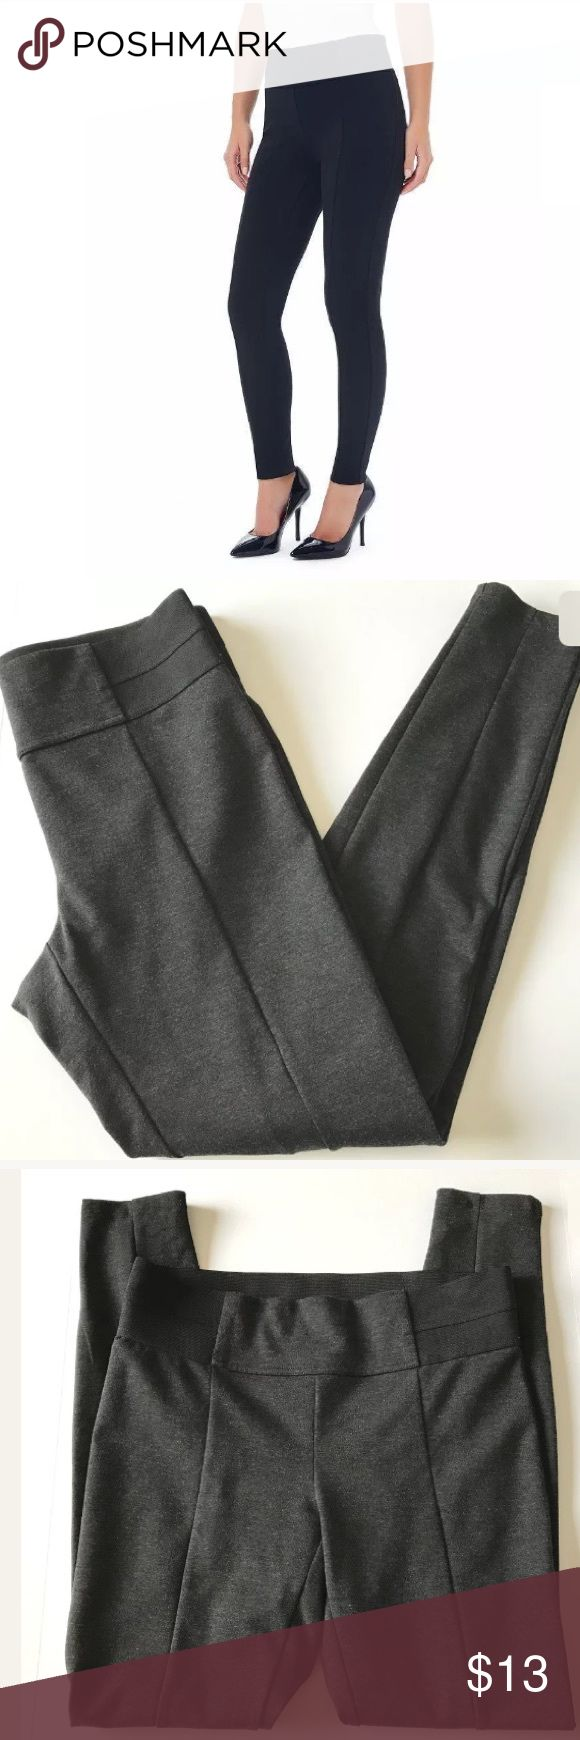 "Daisy Fuentes Women's Gray Leggings Pants Medium Daisy Fuentes Women's Gray Stretch Leggings Pants Medium Charcoal Heather!! Preowned!! Excellent Condition!! Inseam 28"" Daisy Fuentes Pants Leggings"